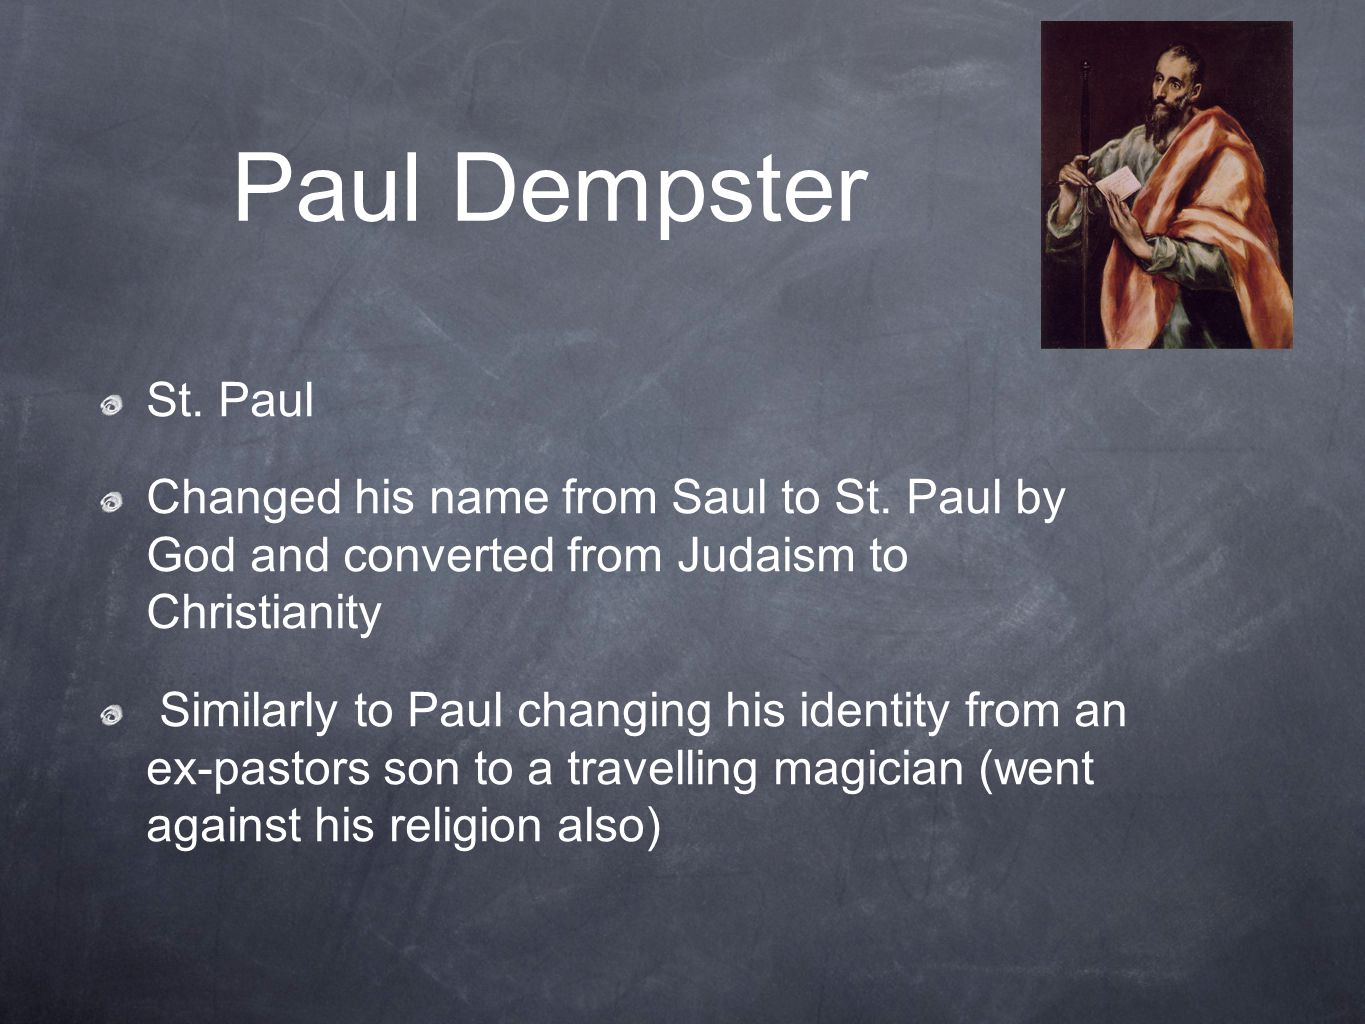 Paul Dempster St. Paul. Changed his name from Saul to St. Paul by God and converted from Judaism to Christianity.